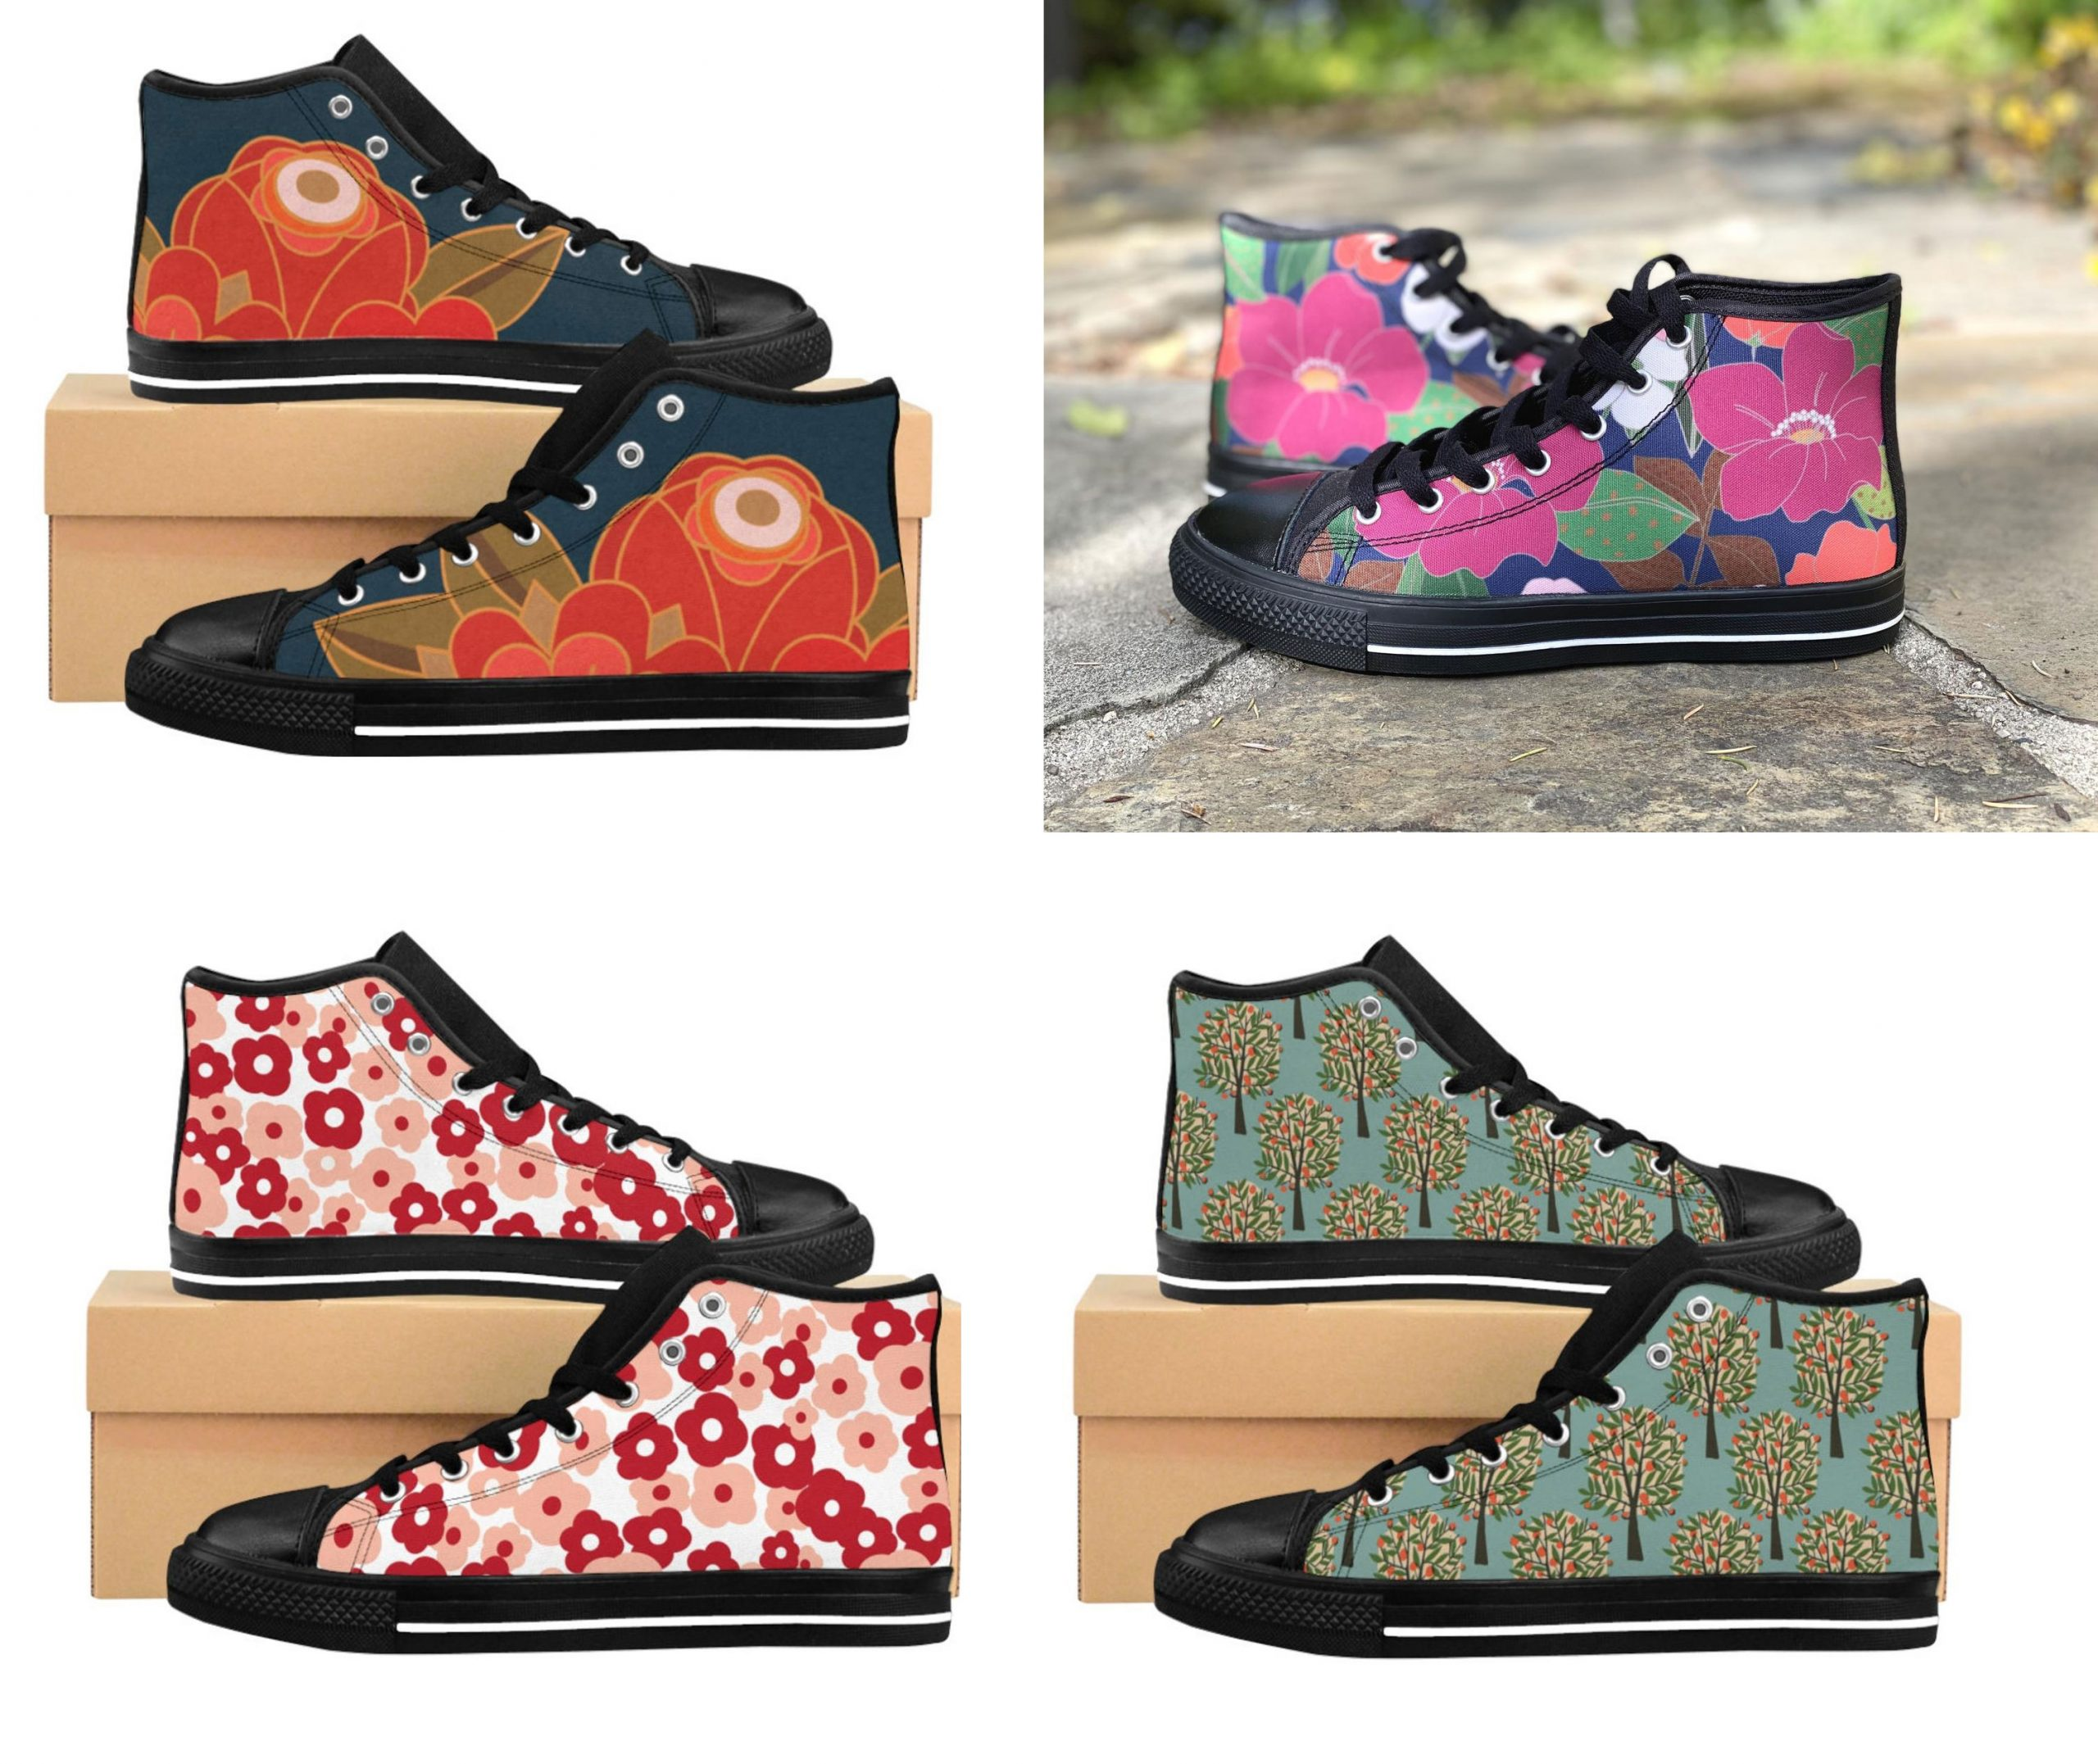 Shop: High tops with original artwork and patterns